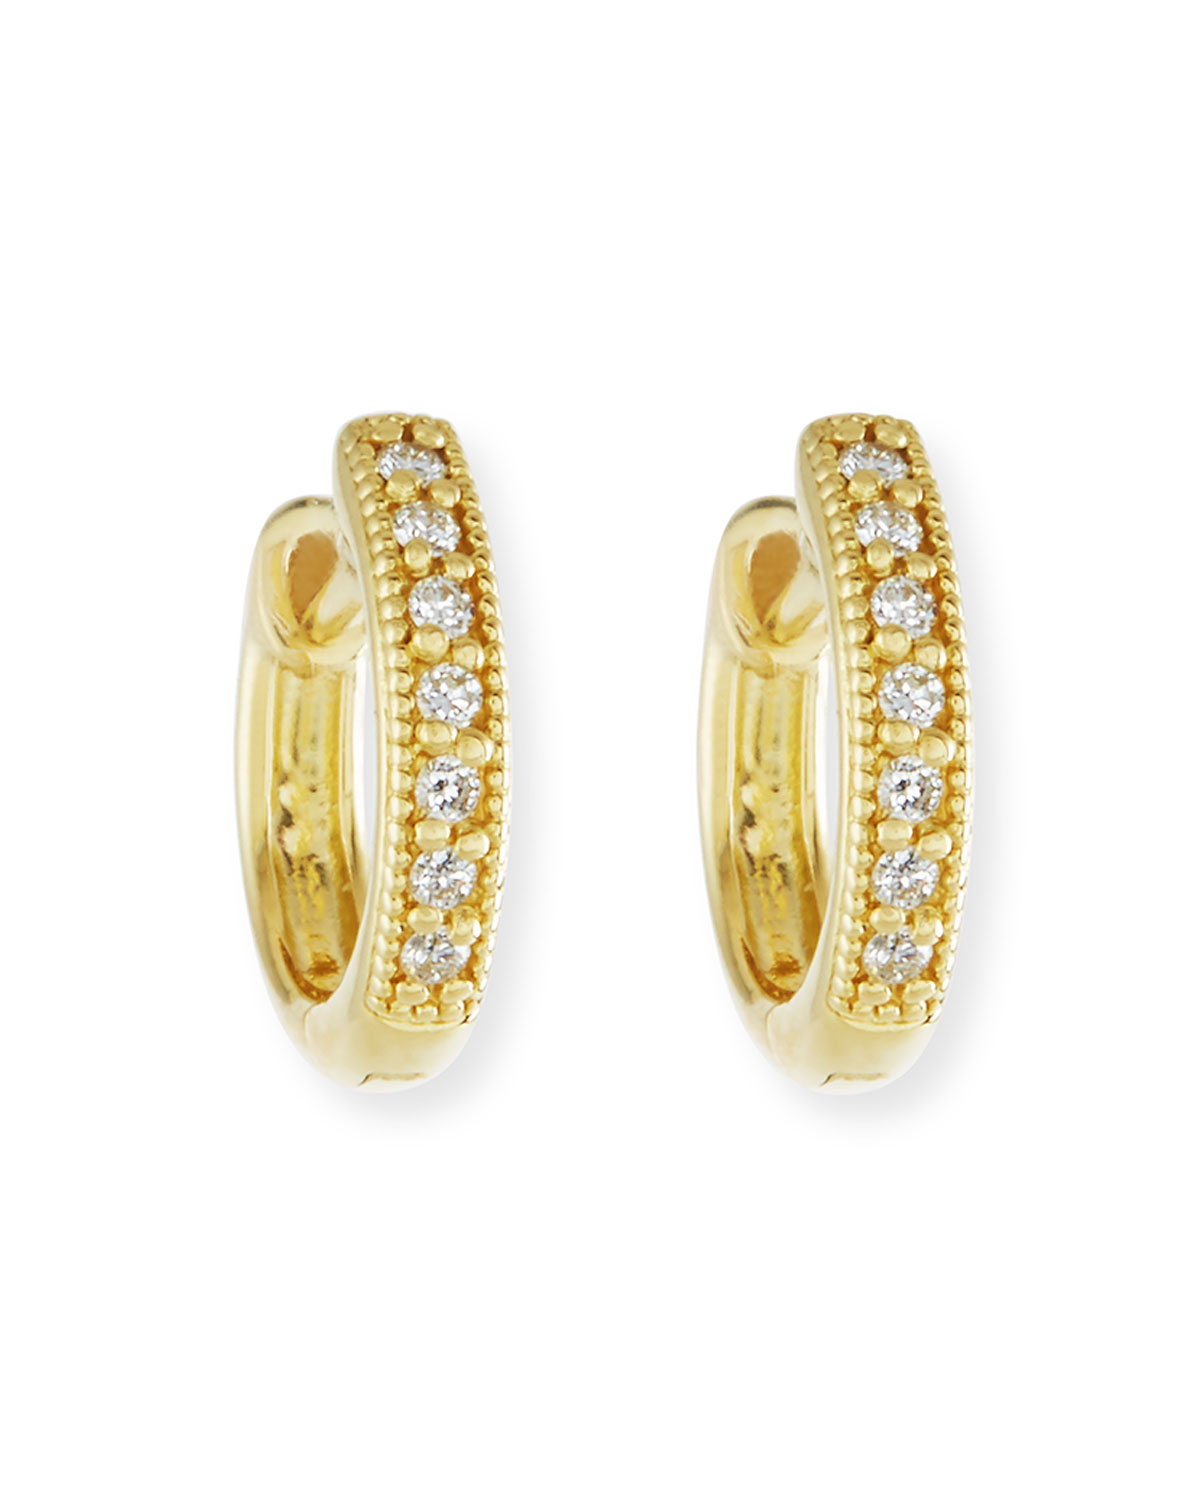 Small 18k Gold Hoop Earrings With Diamonds 11mm